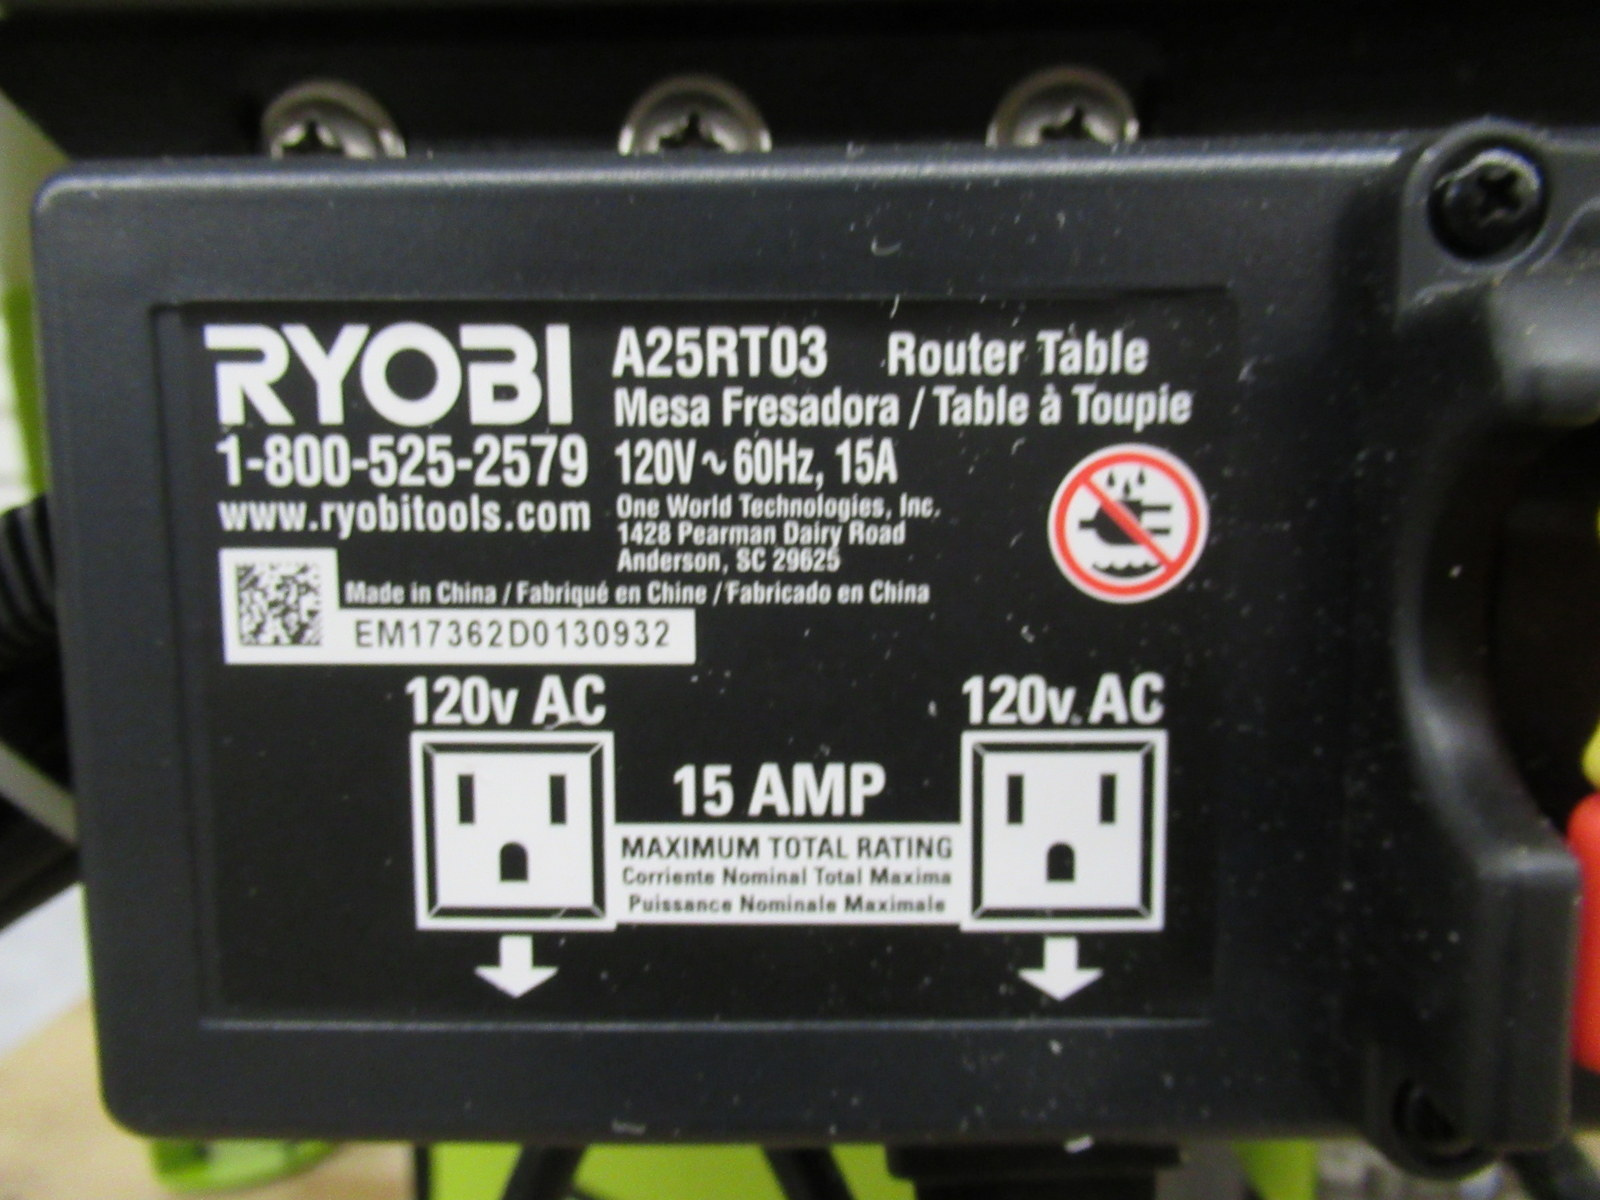 Lot 226 - Ryobi A25SRT03 Router Table